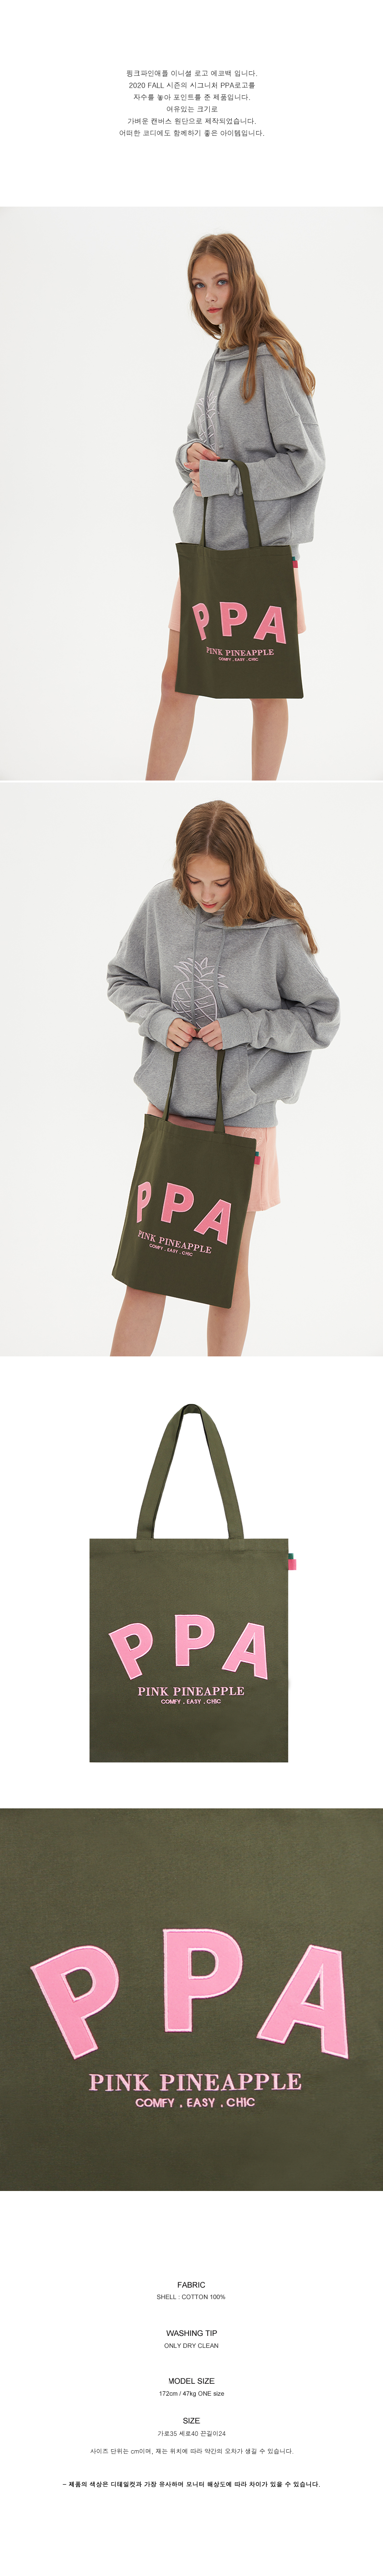 PC3AA912L_INITIAL20LOGO20ECO20BAG_GREEN_192C8.jpg